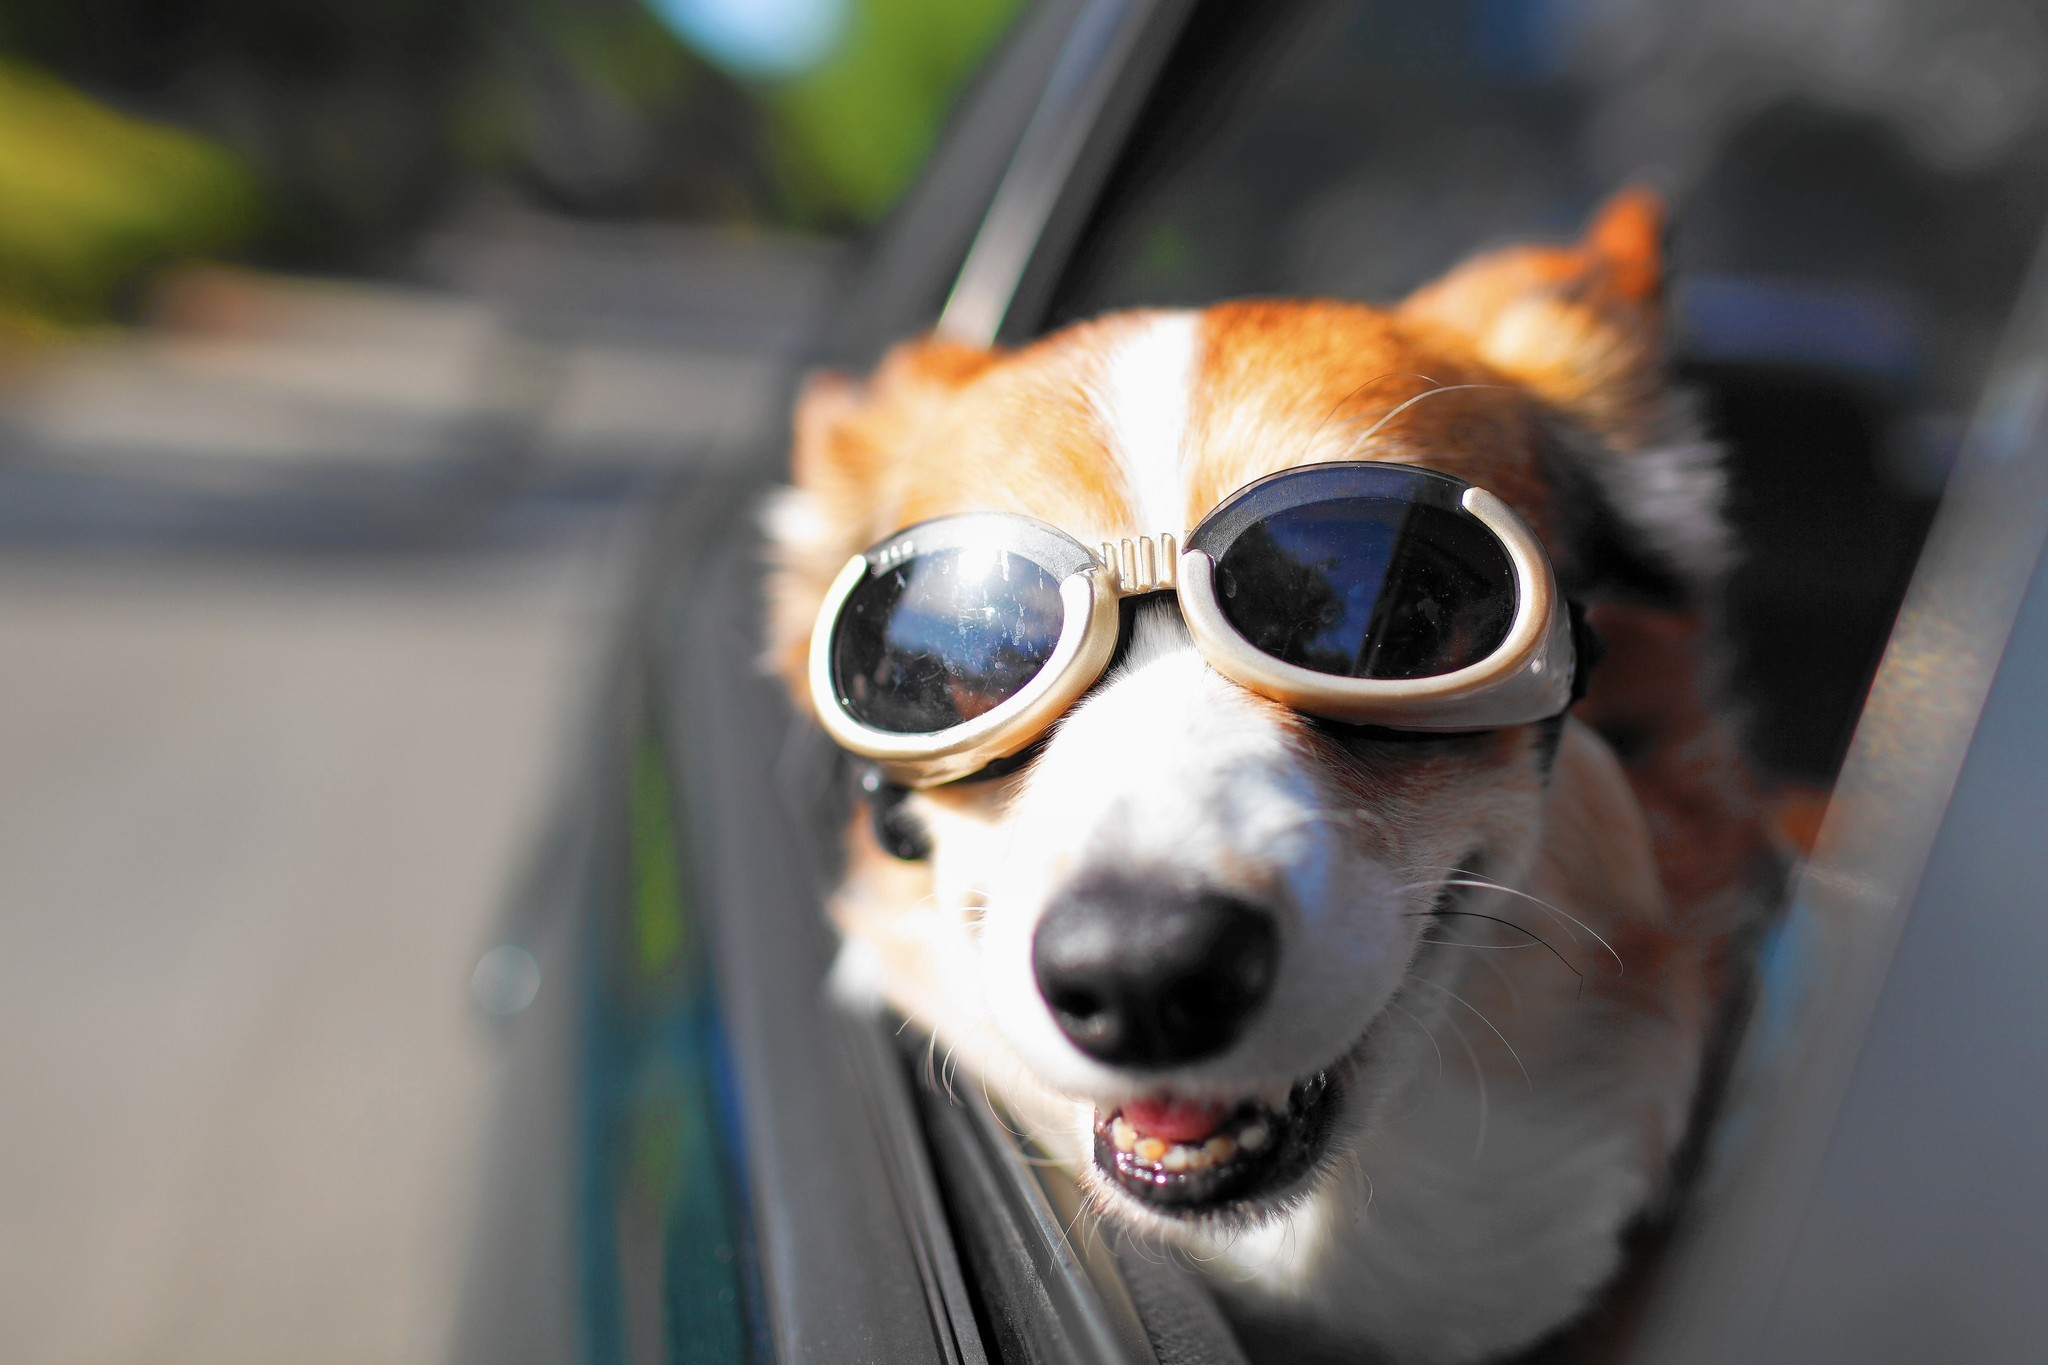 Dog owners engineers work on technology to make pets safe in cars chicago tribune